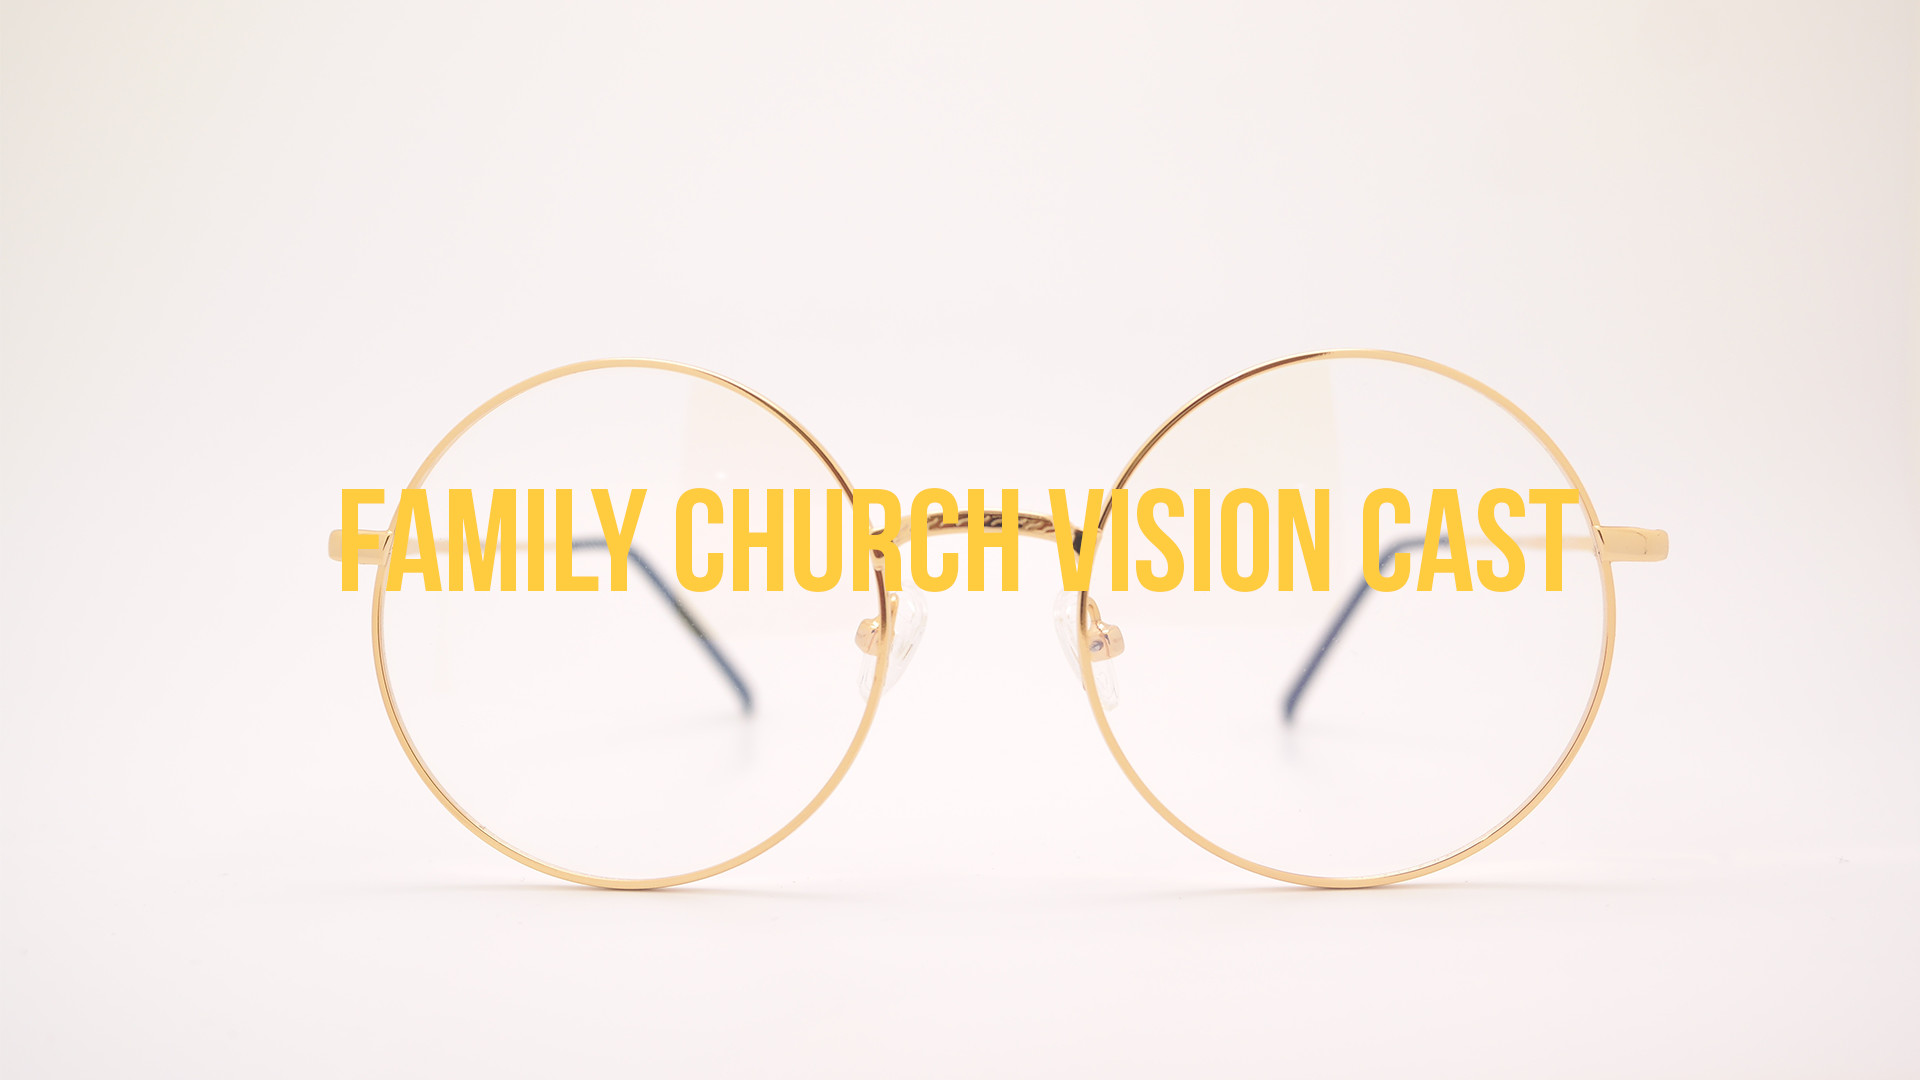 Presenting the vision of Family Church (Re-examining Jesus' Great Commission mandate to His church and presenting a more effective strategy for THC to live out the Great Commission).